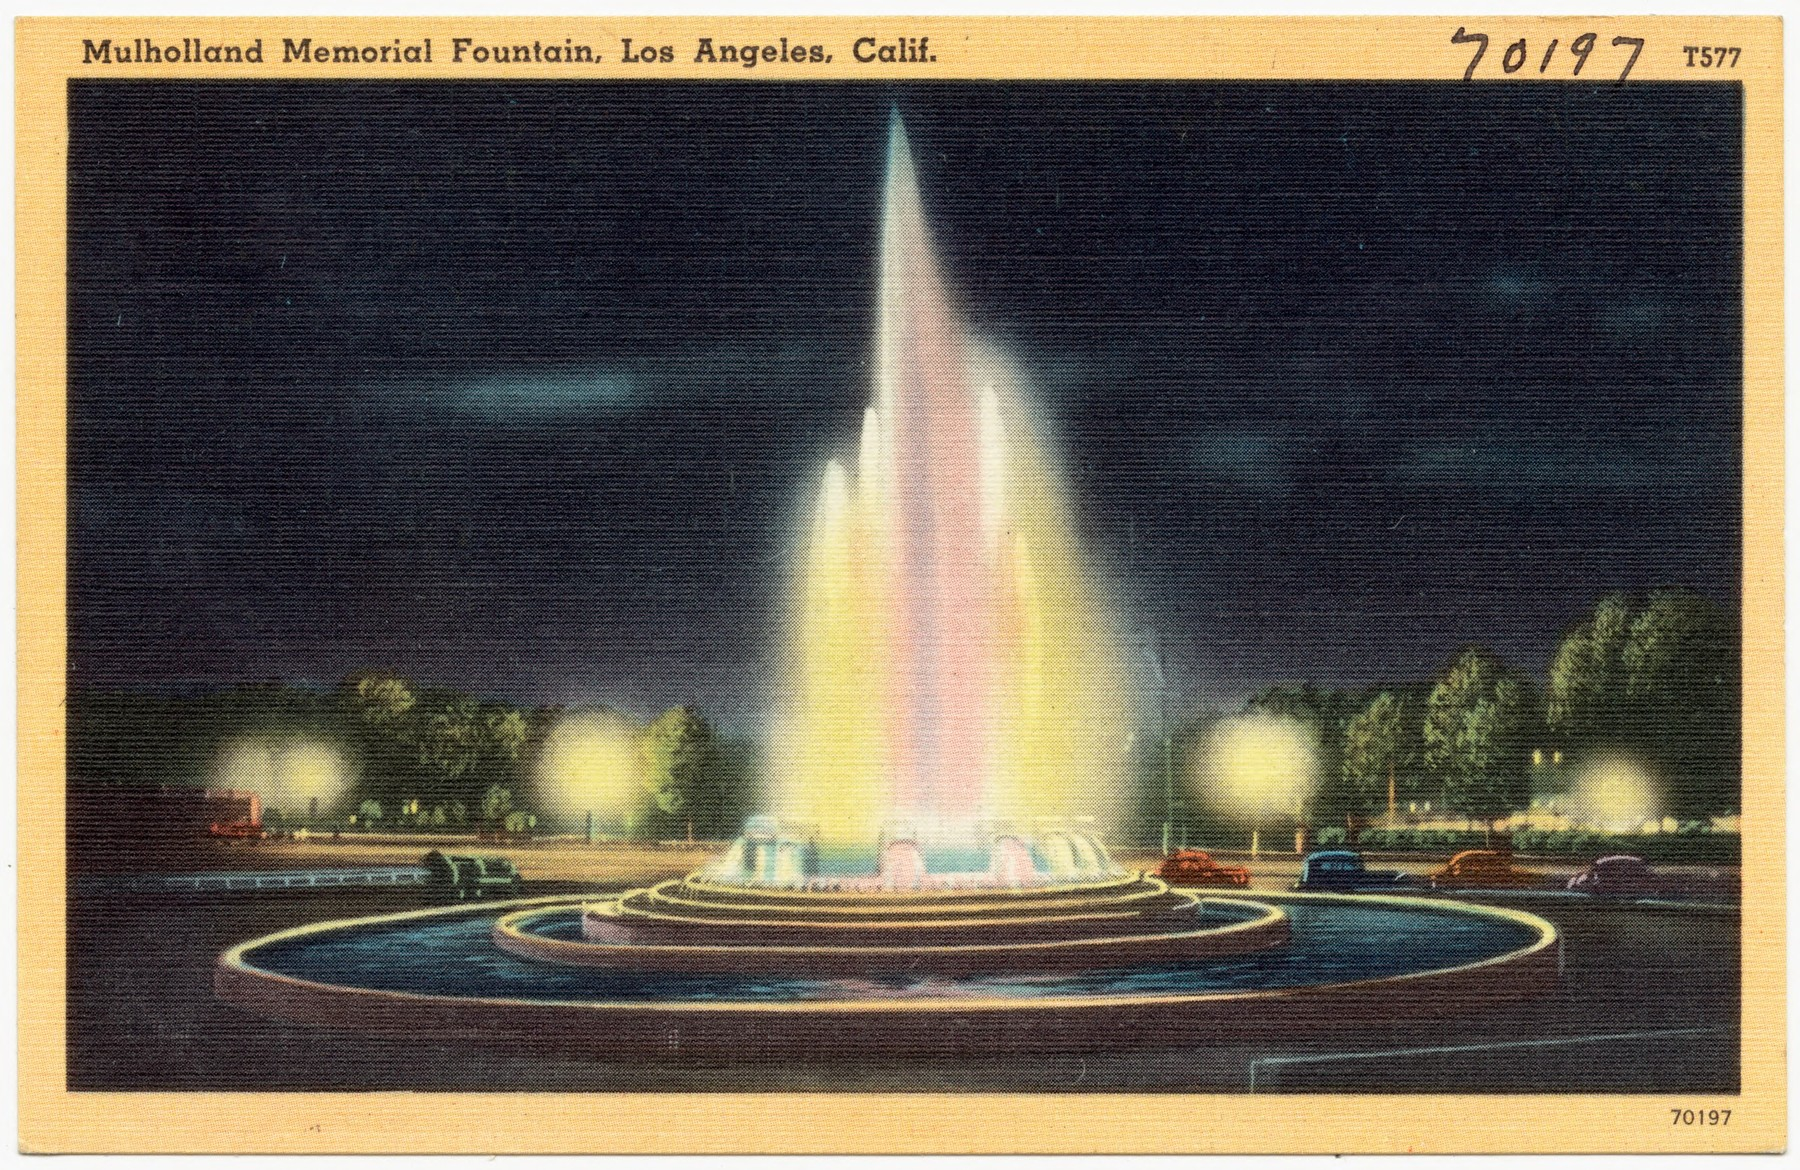 Mulholland Memorial Fountain, Los Angeles